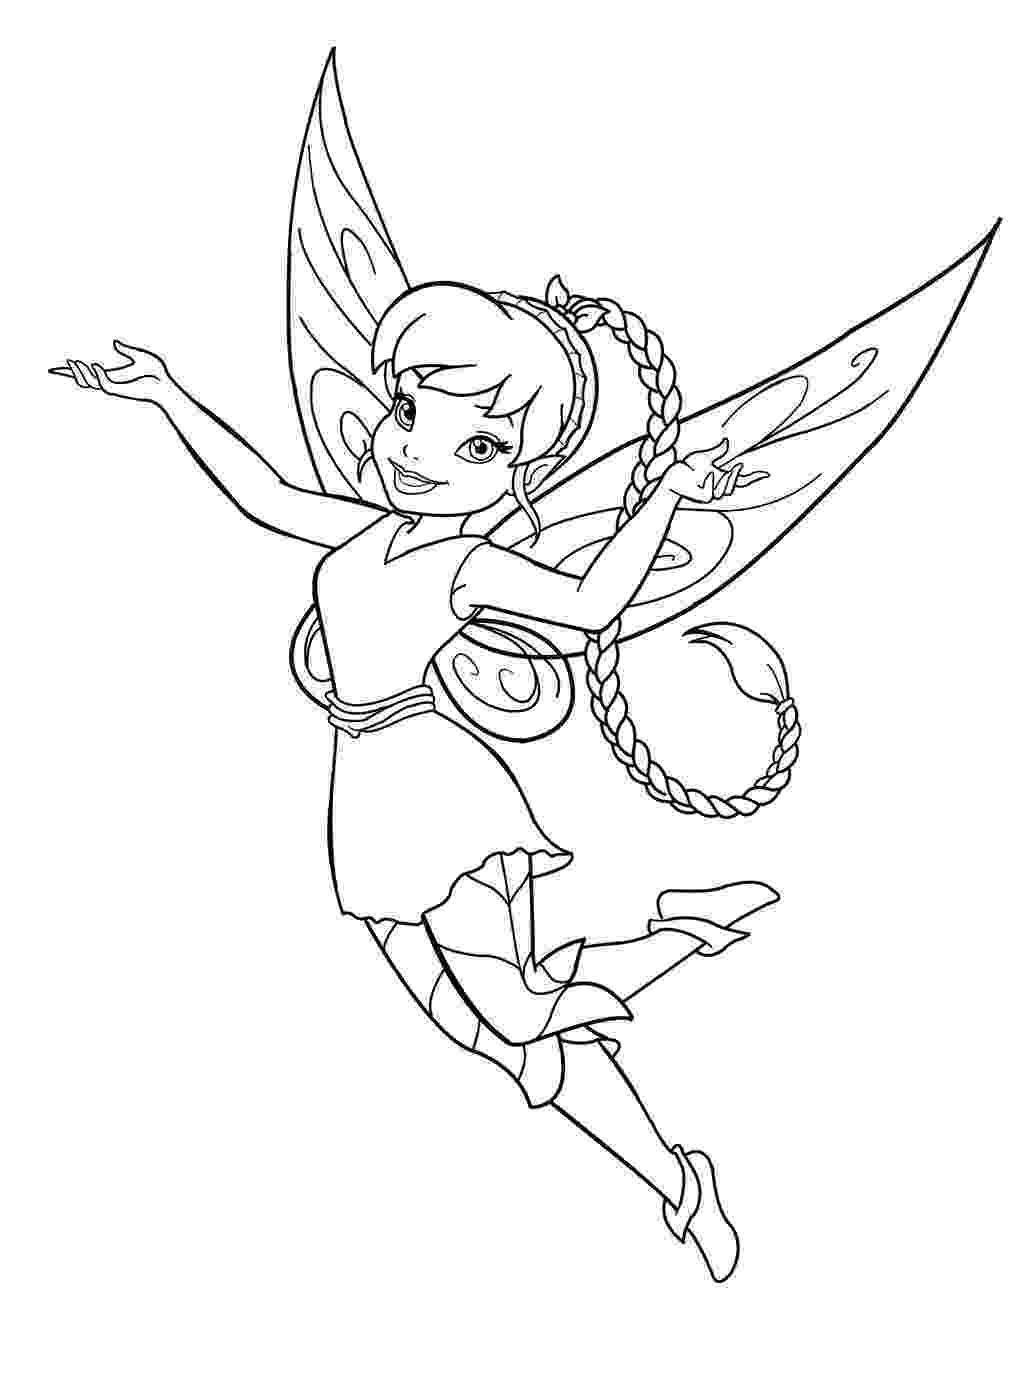 disney fairies printable colouring pages printable disney fairies coloring pages for kids cool2bkids pages printable fairies disney colouring